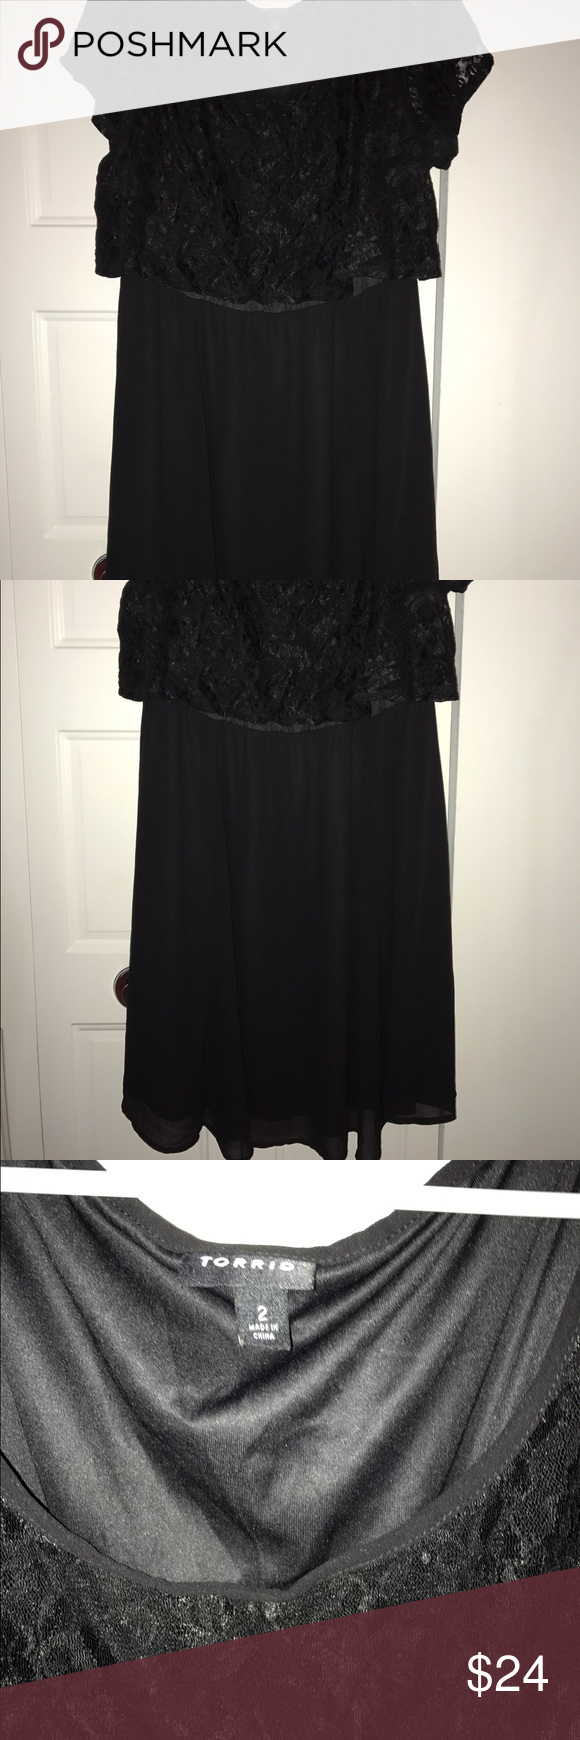 Lace dress torrid  Plus size Torrid black lace chiffon skater dress